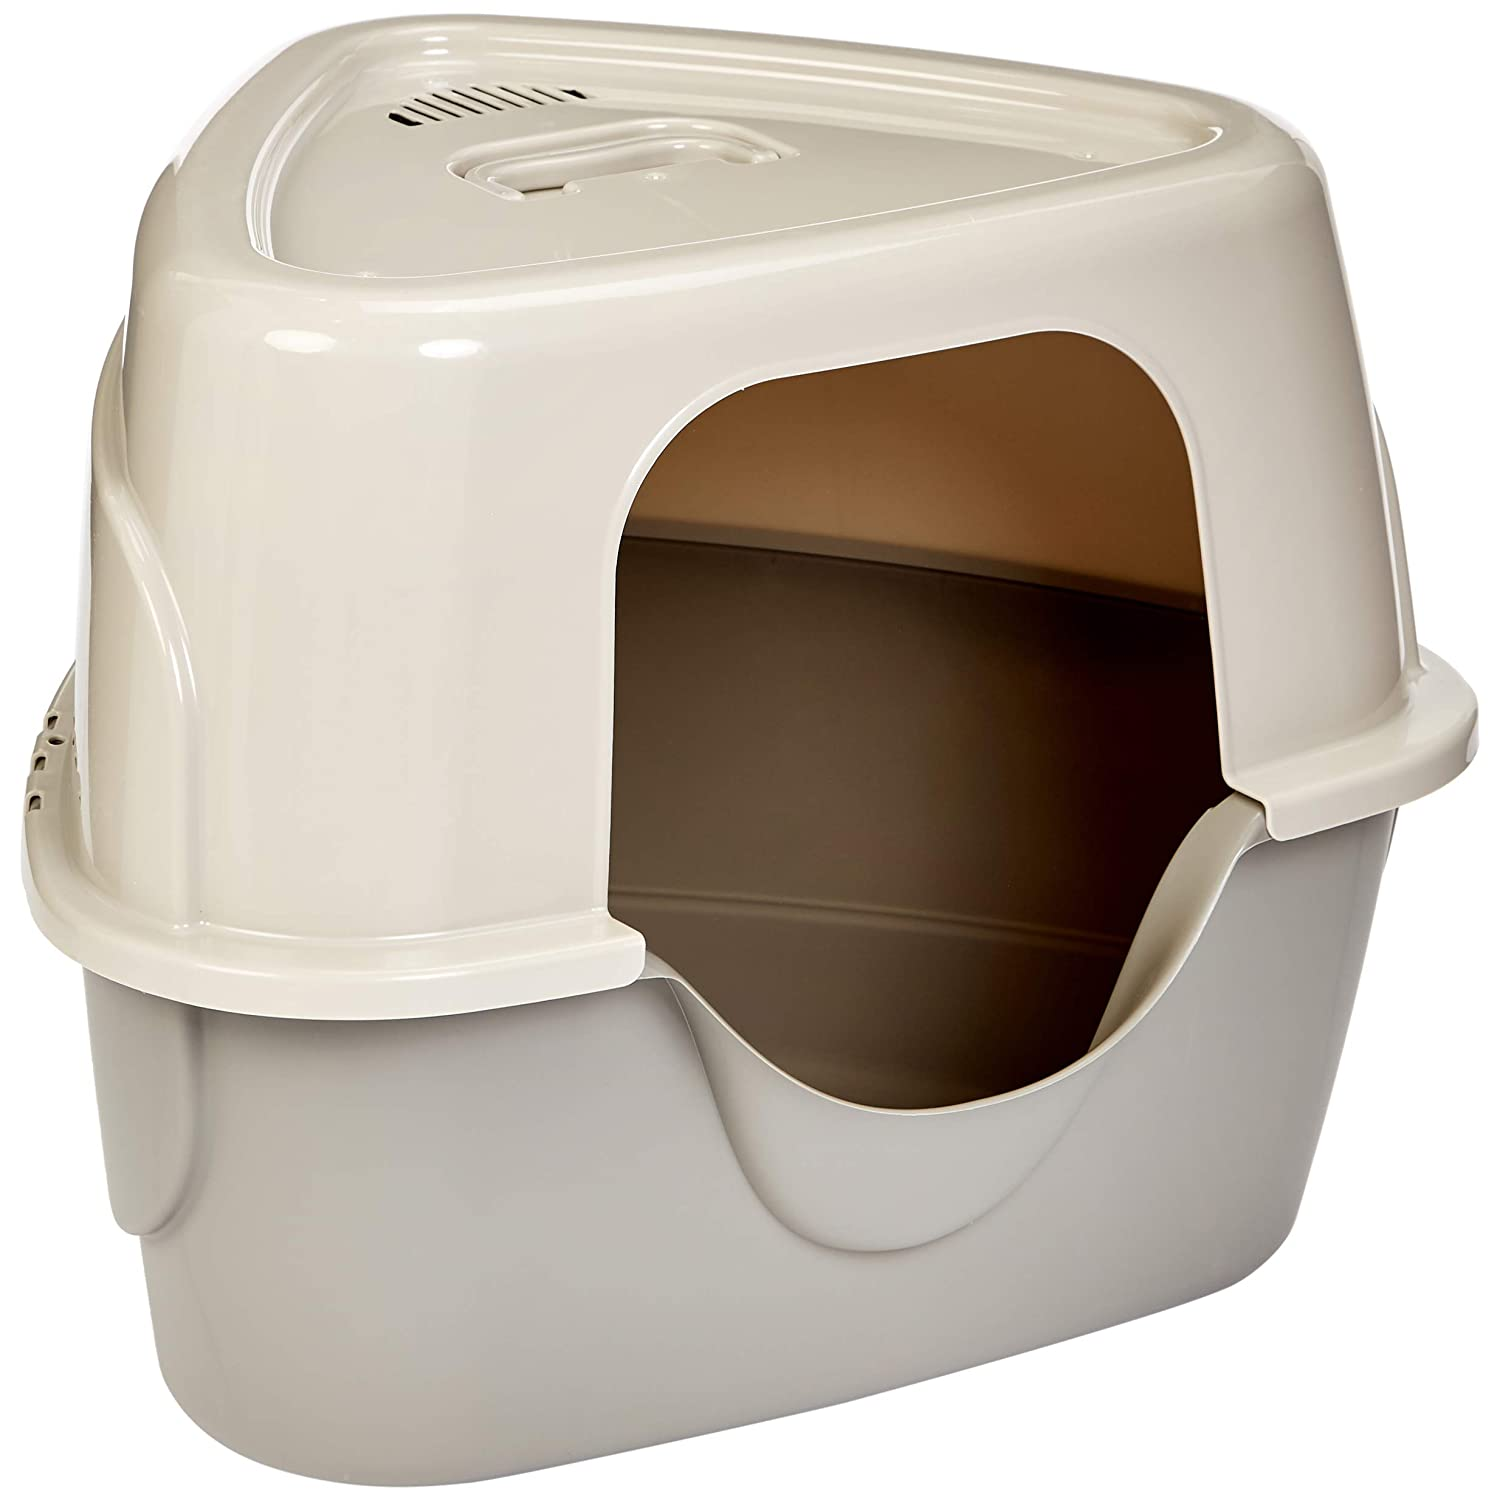 AmazonBasics Hooded Cat Litter Box